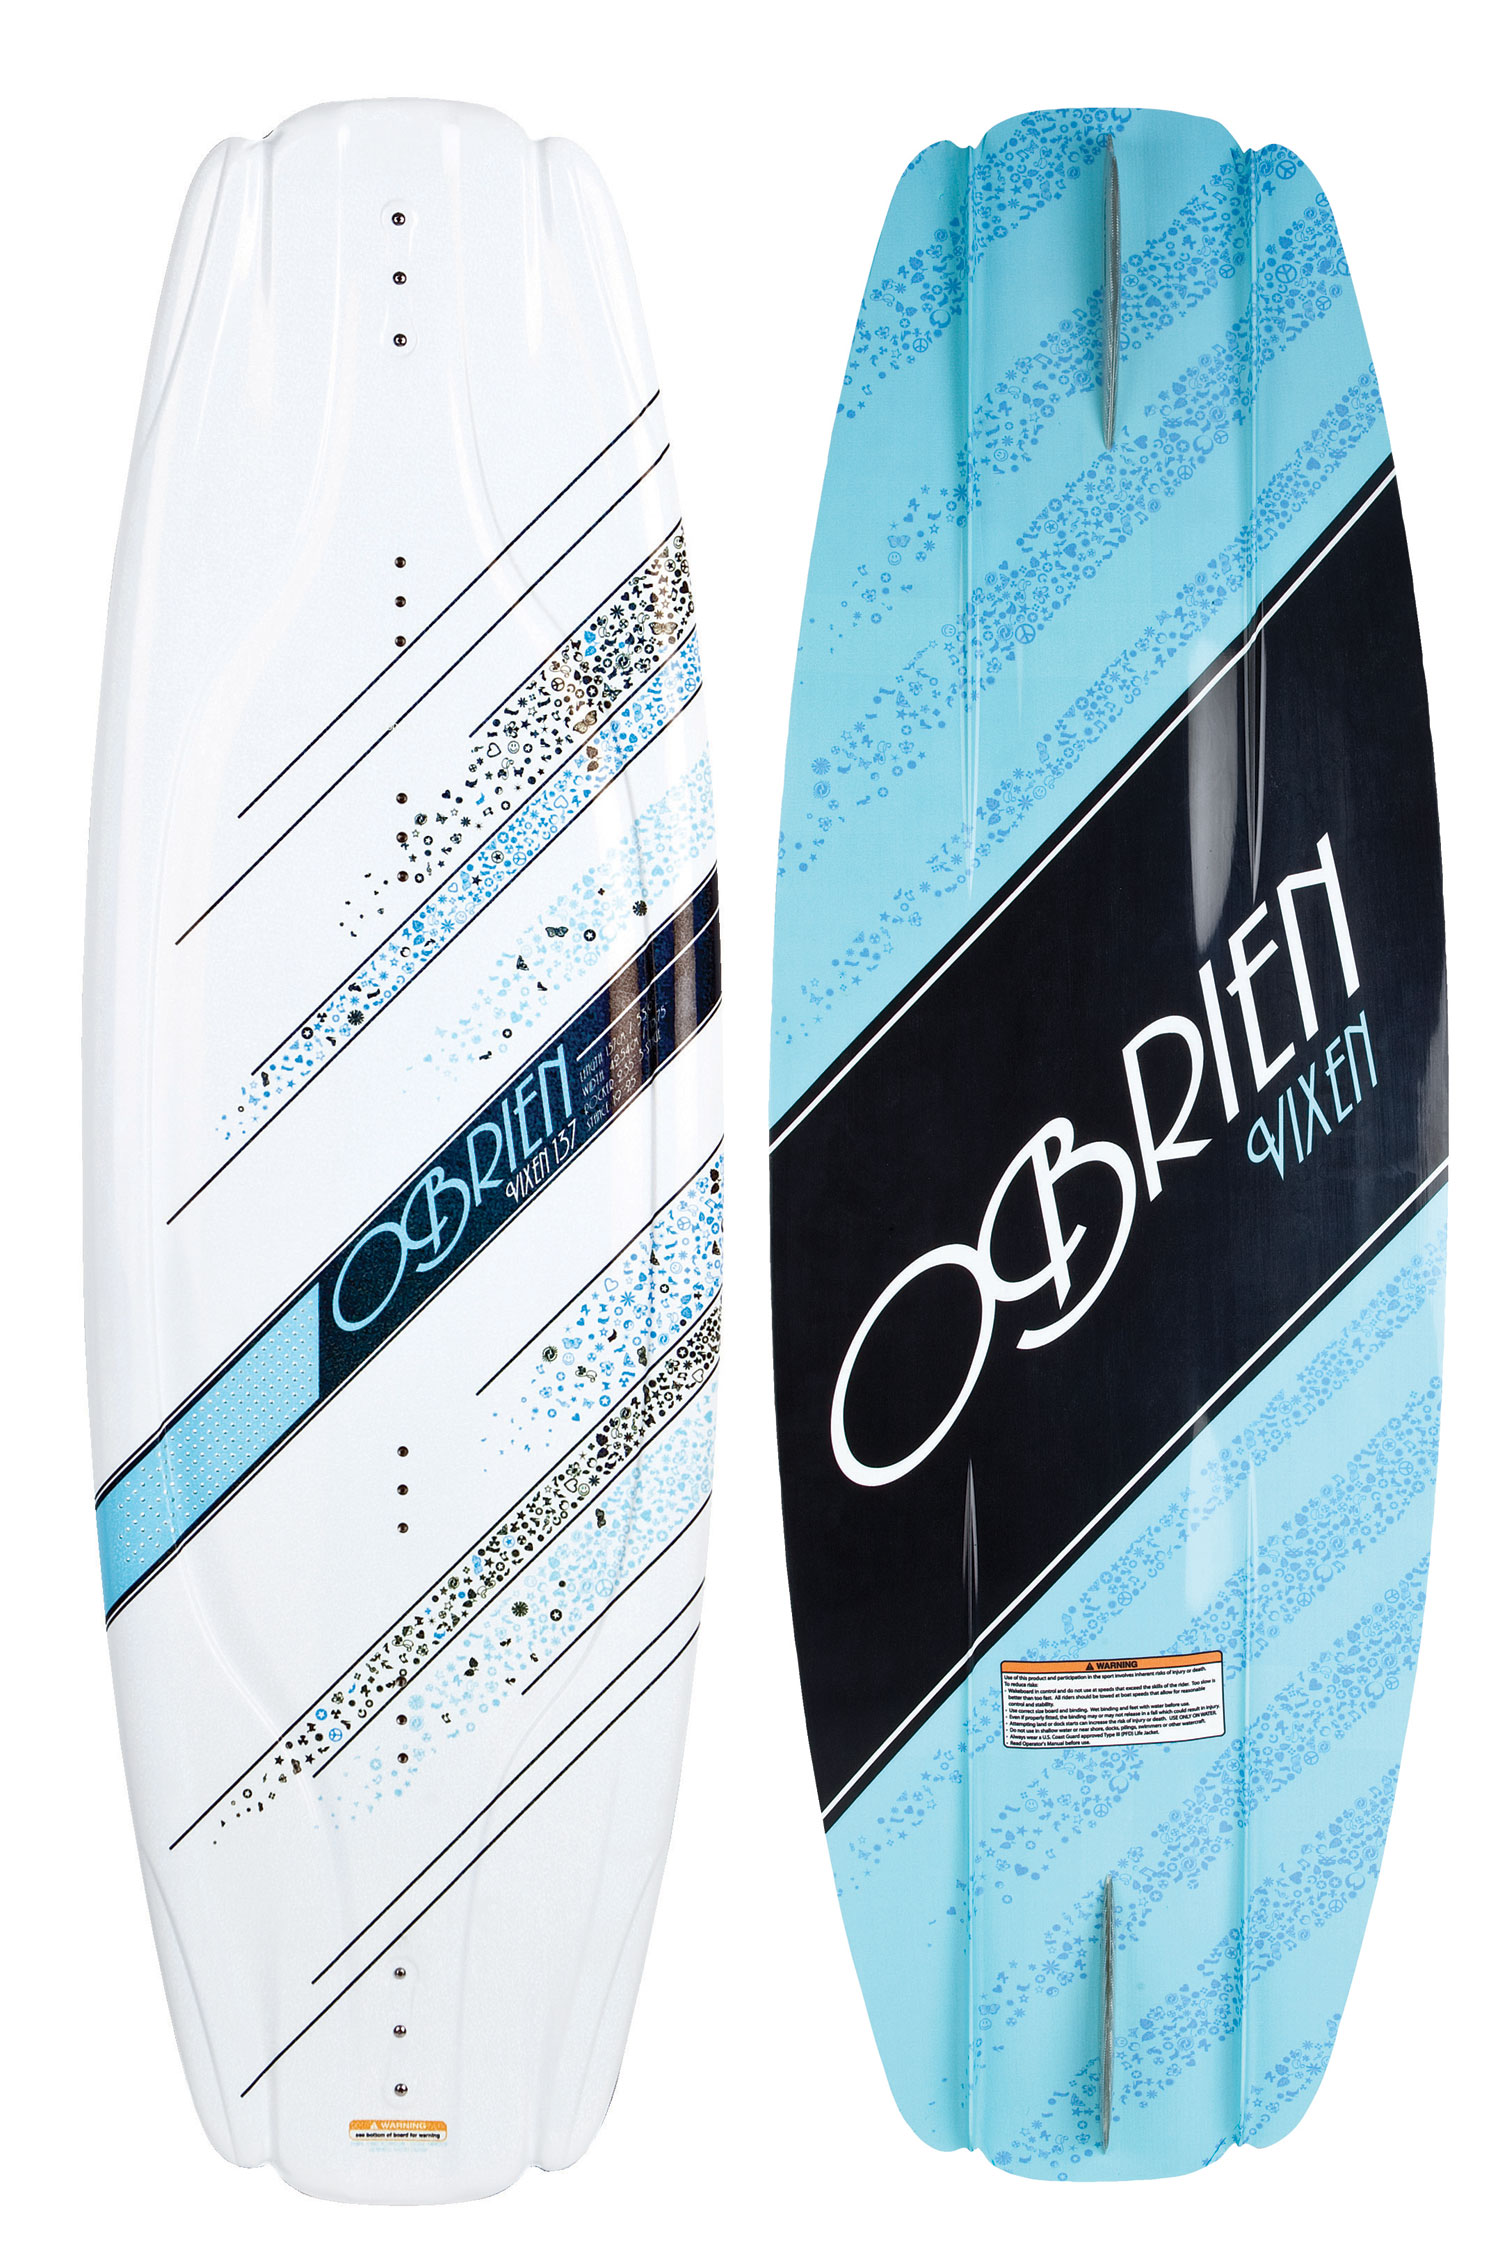 "Wake The O'Brien Vixen Wakeboard has all the features of O'Brien's Clutch wakeboard, tuned for the ladies. Extended refined molded-in fins give the smoothest control, Pop comes easy with the three-stage rocker.Key Features of the O'Brien Vixen Wakeboard: Shape by Cobe Mikacich Graphic Treatment: Sparkle top, chrome perf. Rocker Type: Three-stage Skill Level: Beginner/Intermediate Construction: PBT top w/ injection foam core Fin Configuration: Three on each end. One 1.4"" Pipe center fin and two molded-in side fins Wakeboard Binding CompatabilityCan not accomodate bindings with a 6 inch binding plate. Can accommodate bindings with a 8 inch binding plate in all position options found here. - $155.95"